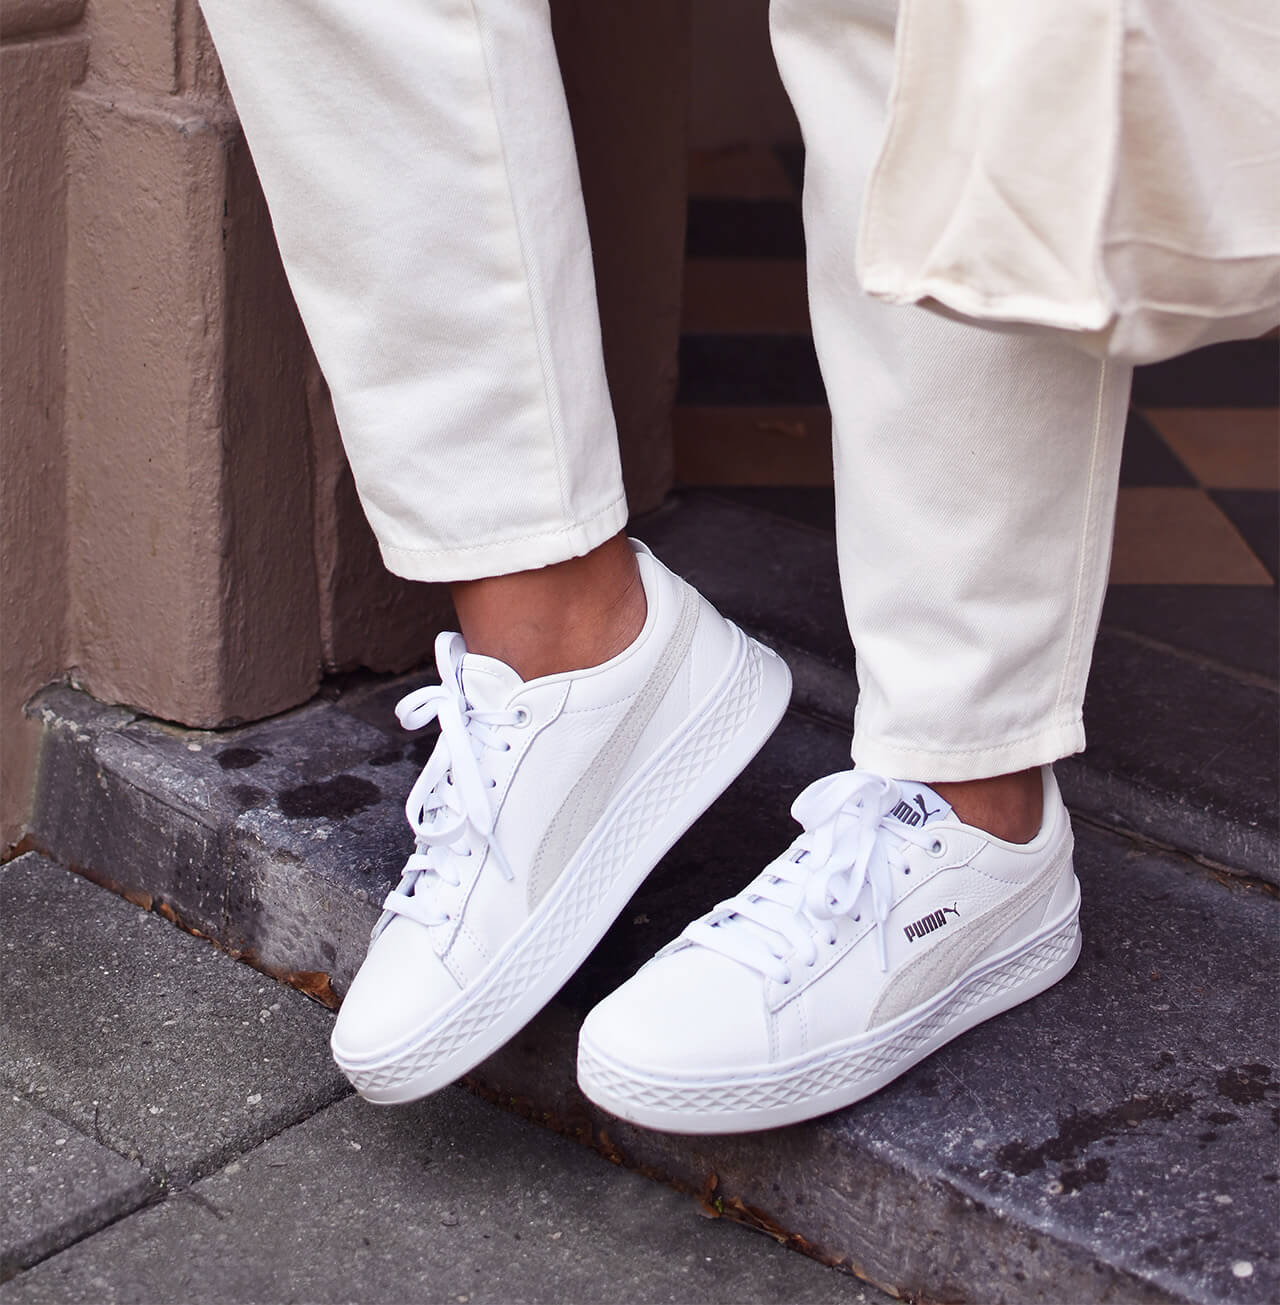 Wardrobe essentials: merksport sneakers - Shoelove bij vanHaren